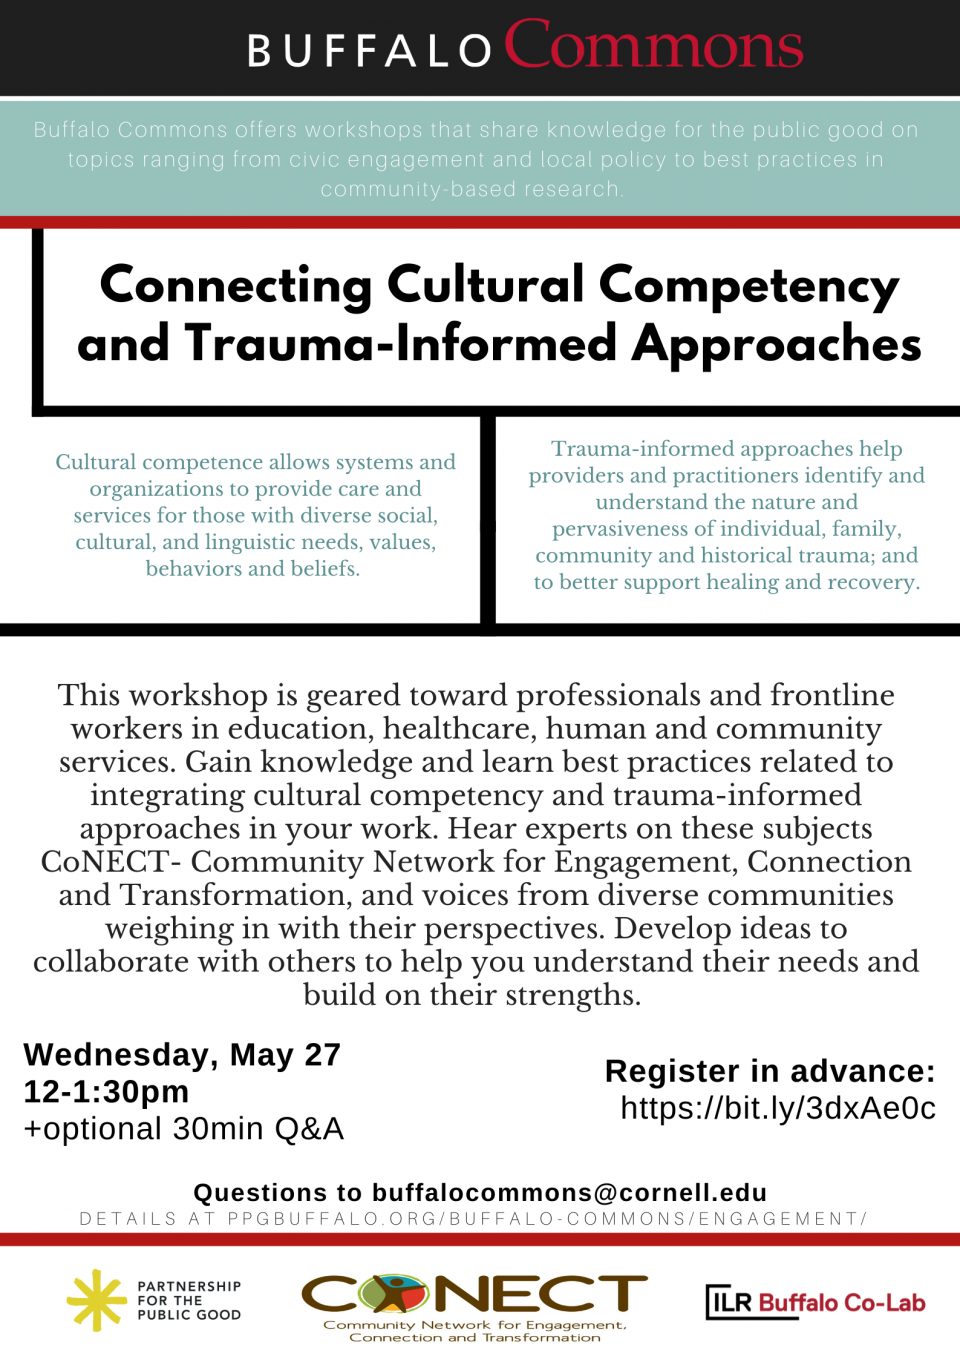 Buffalo Commons Virtual Workshop: Connecting Cultural Competency and Trauma-Informed Approaches